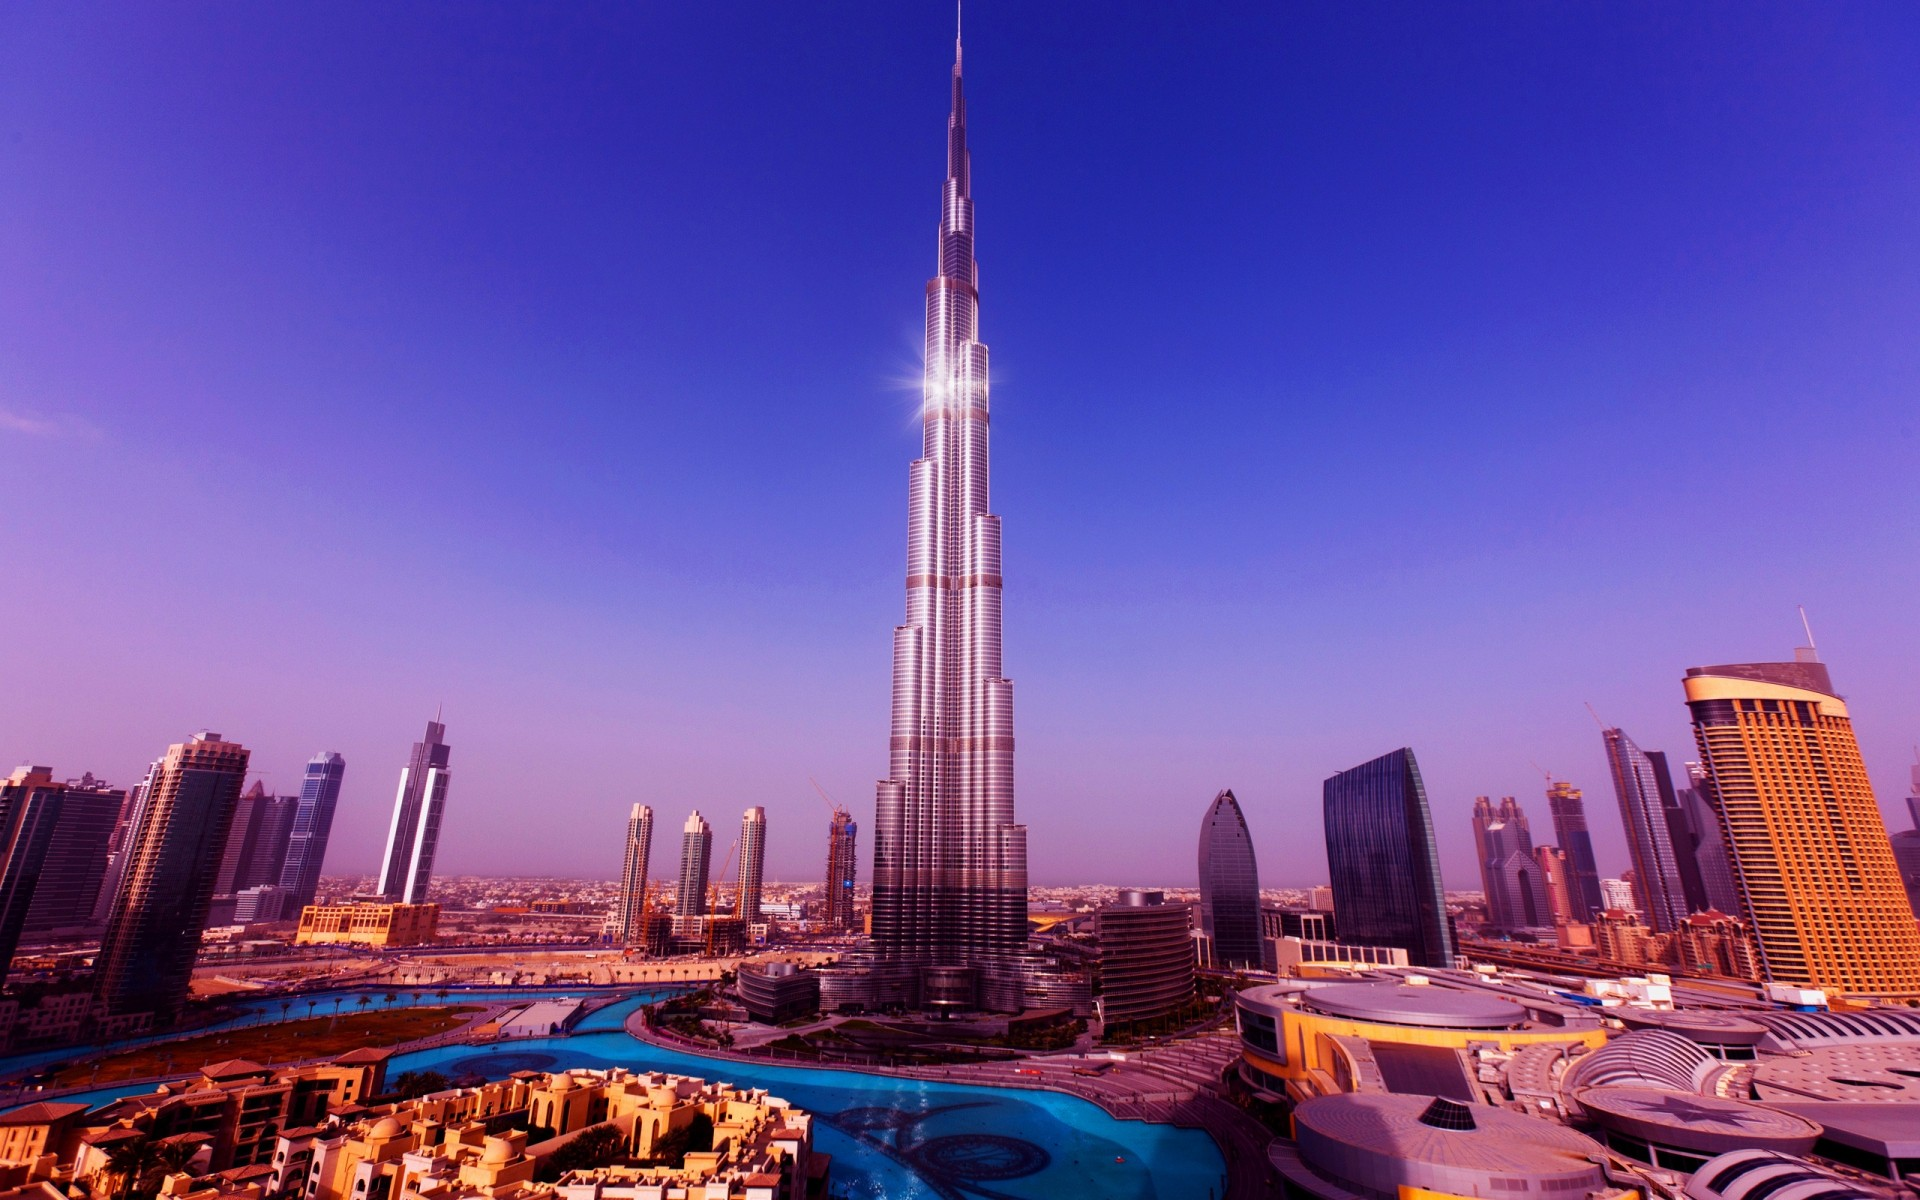 burj al khalifa tower project 1 the burj khalifa height is a staggering 828 meters (27165 feet) tall, soaring over dubai it's three times as tall as the eiffel tower and nearly twice as tall as the empire state building laid end to end, its pieces stretch over a quarter of the way around the world it's cloud-piercing height is certainly one.